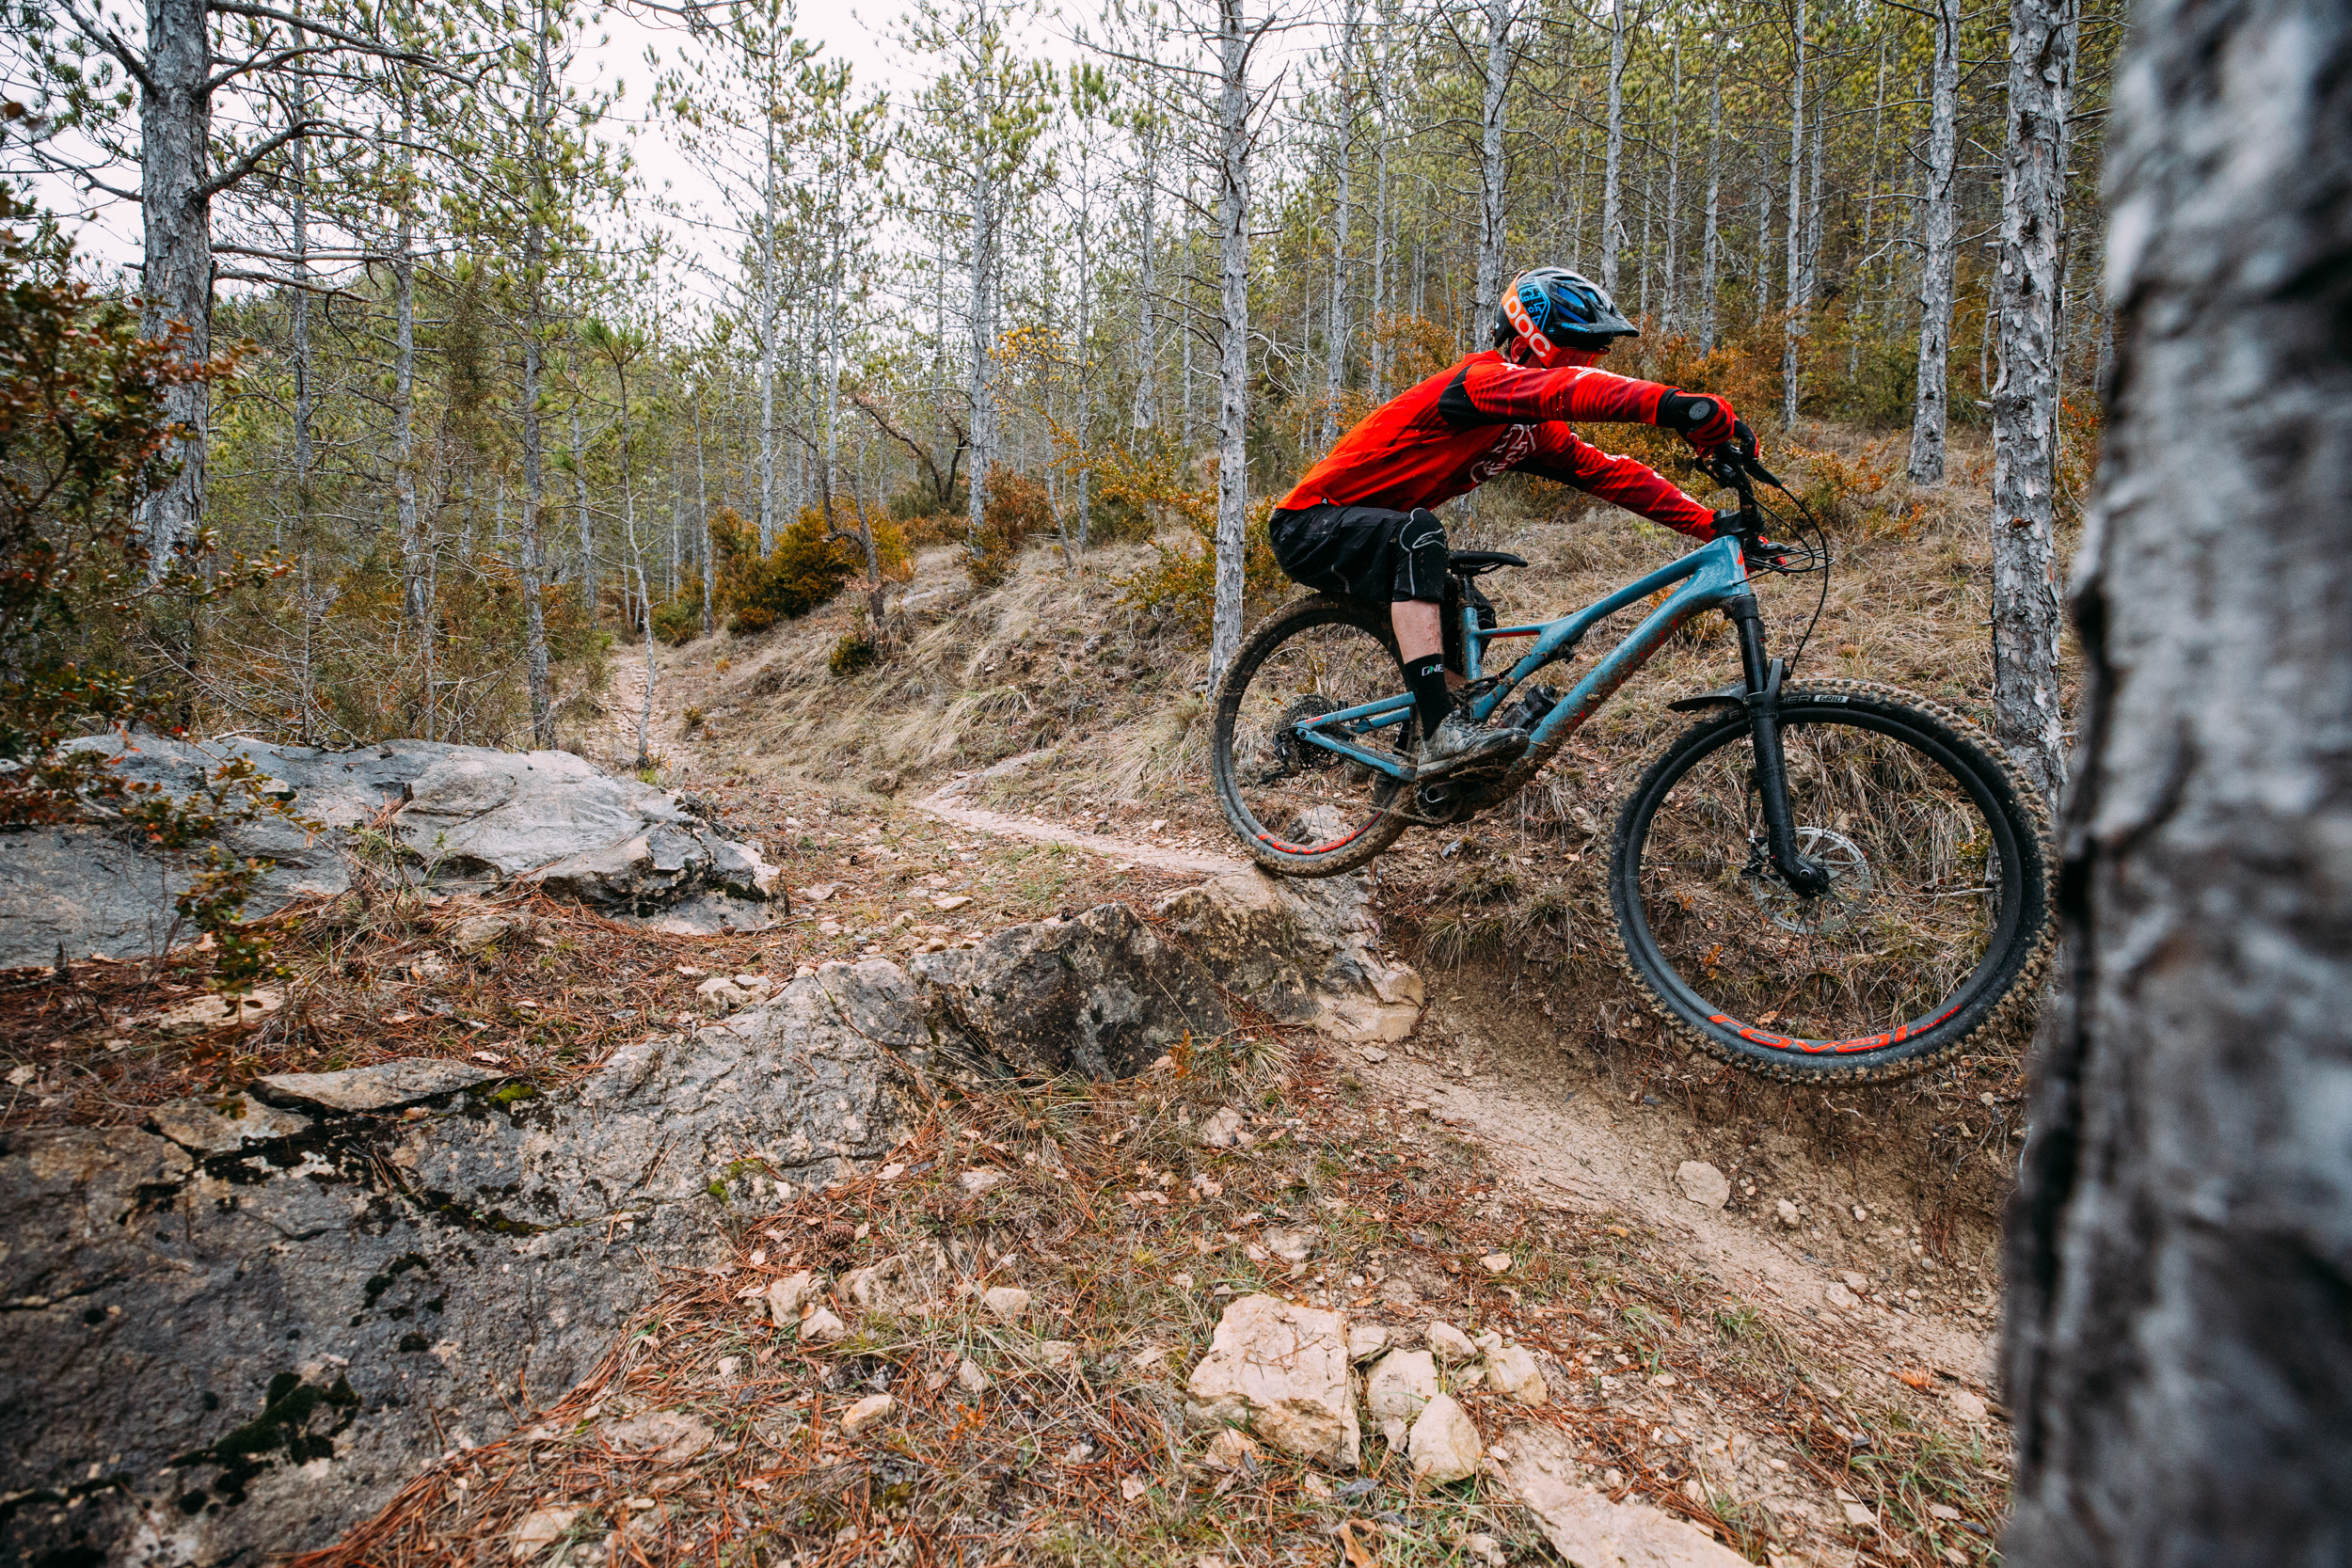 2019 Specialized Stumpjumper first ride impressions - MBR